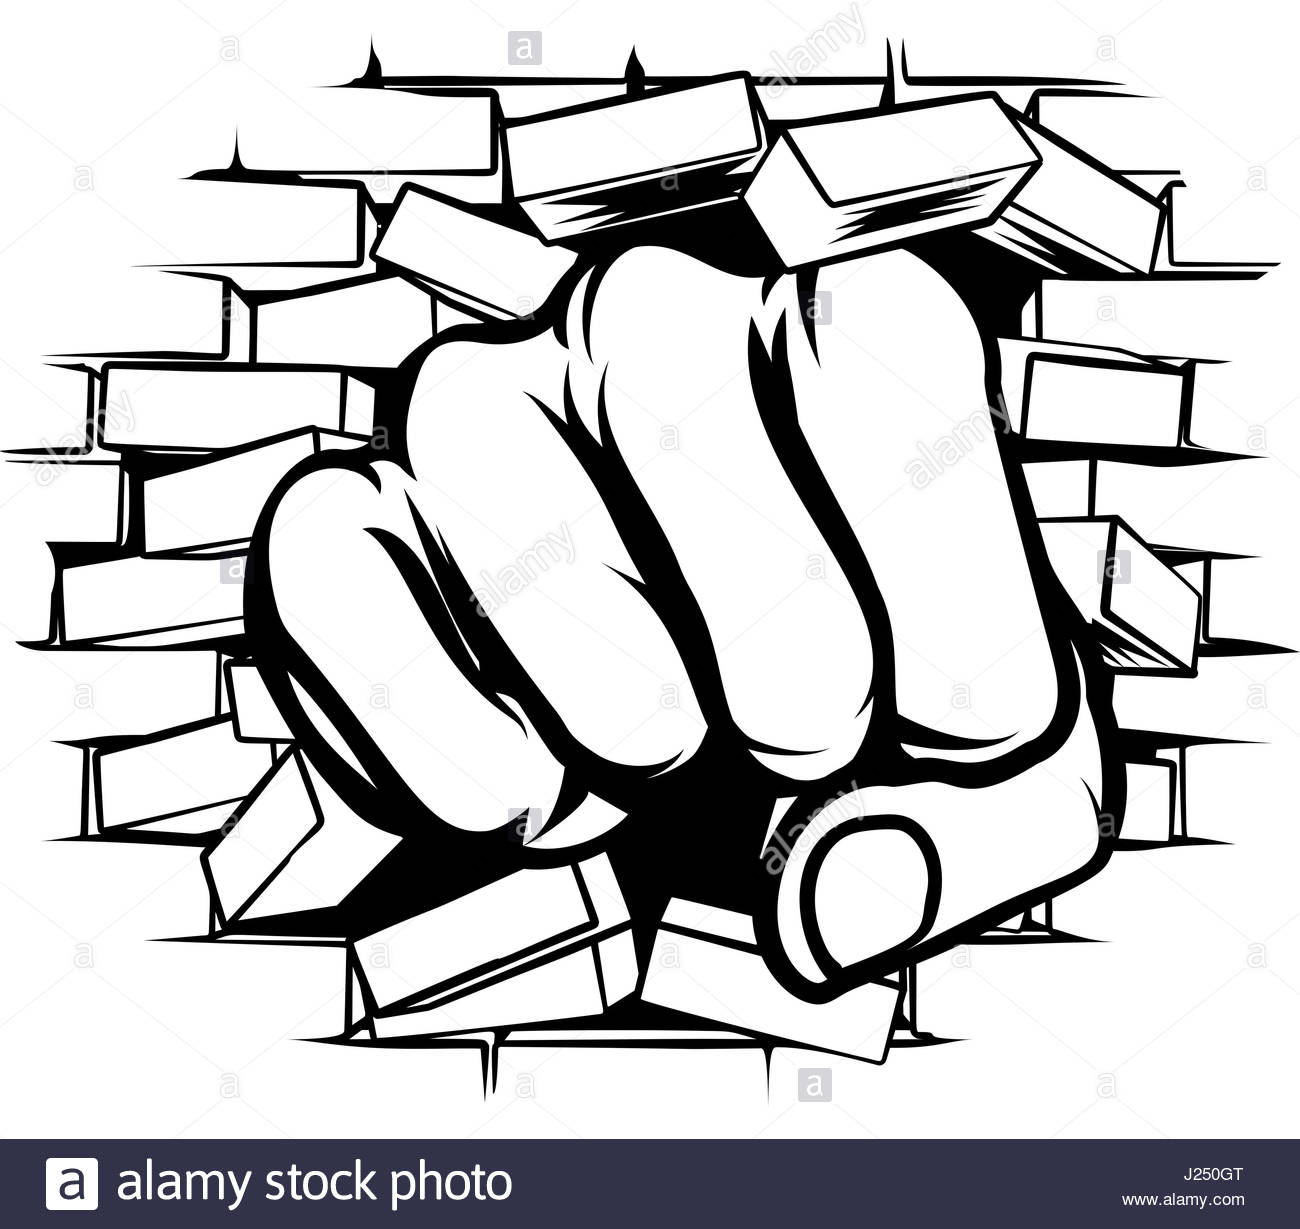 1300x1229 Fist Punching Through Brick Wall Stock Vector Art Amp Illustration